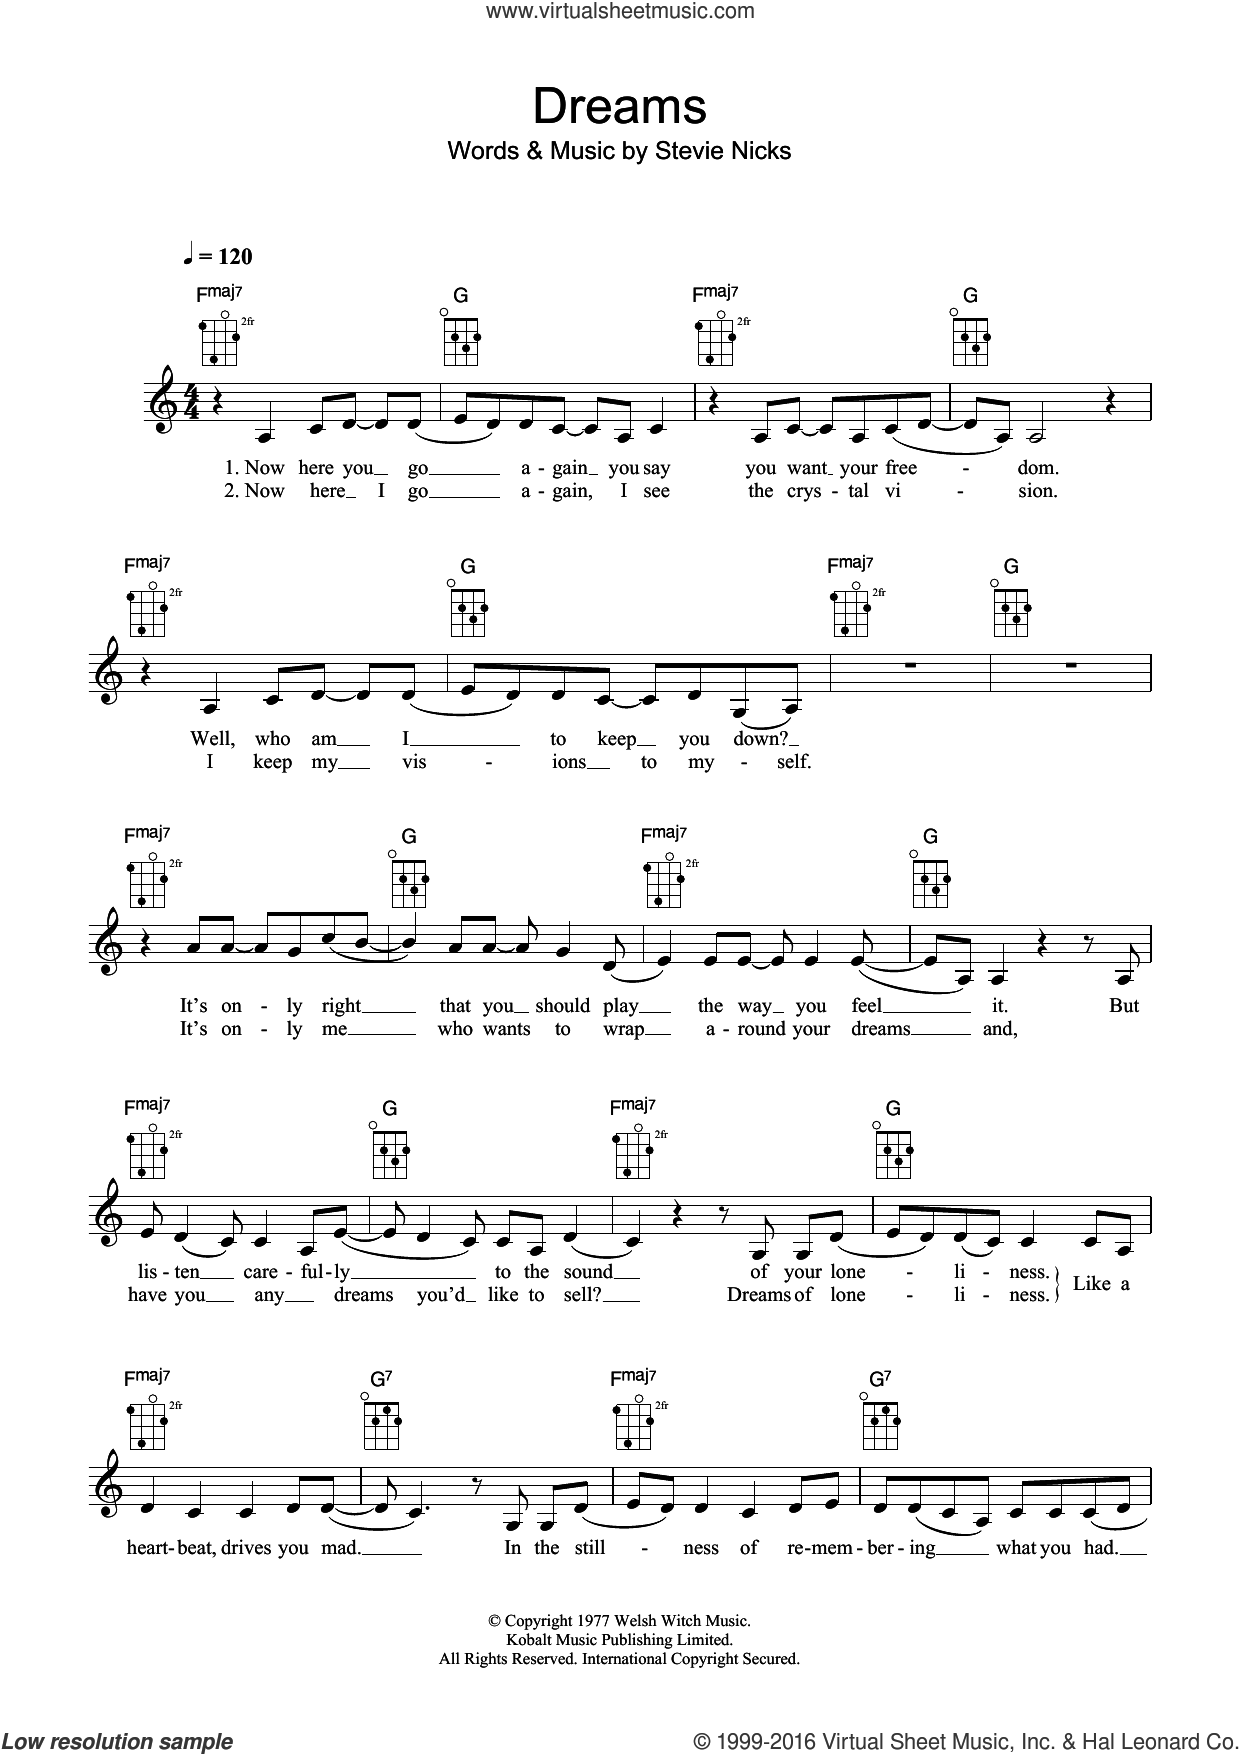 Dreams sheet music for ukulele by Fleetwood Mac, The Corrs and Stevie Nicks, intermediate